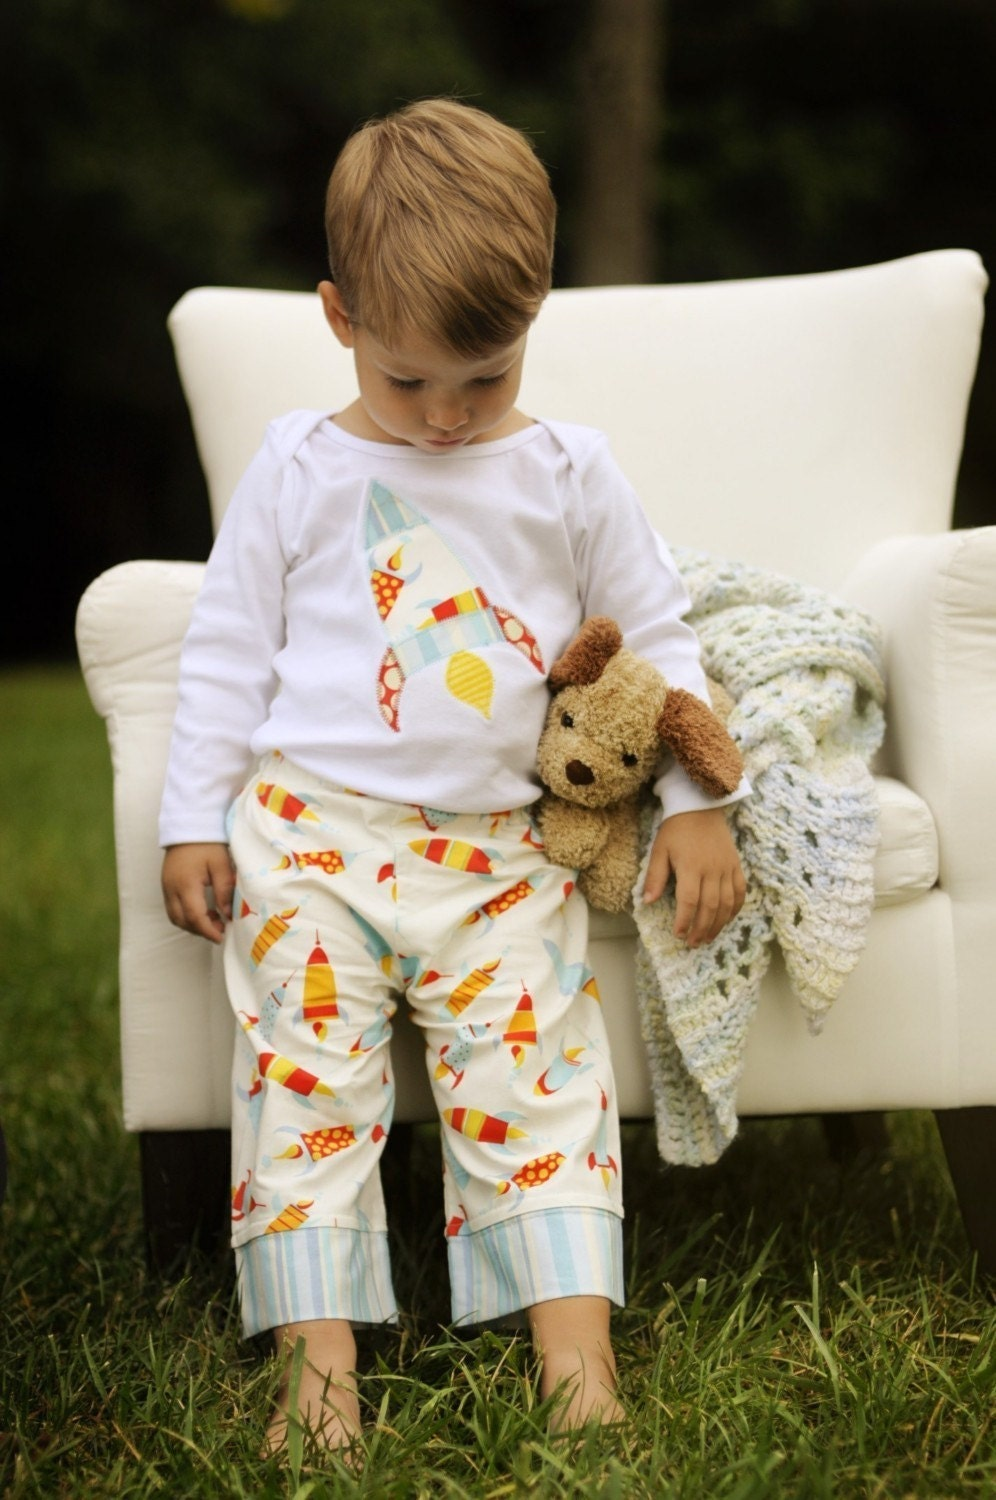 Custom Appliqued Rocket Lounge Set for Little Boys with Pants and Appliqued Tee by Olive and Ollie